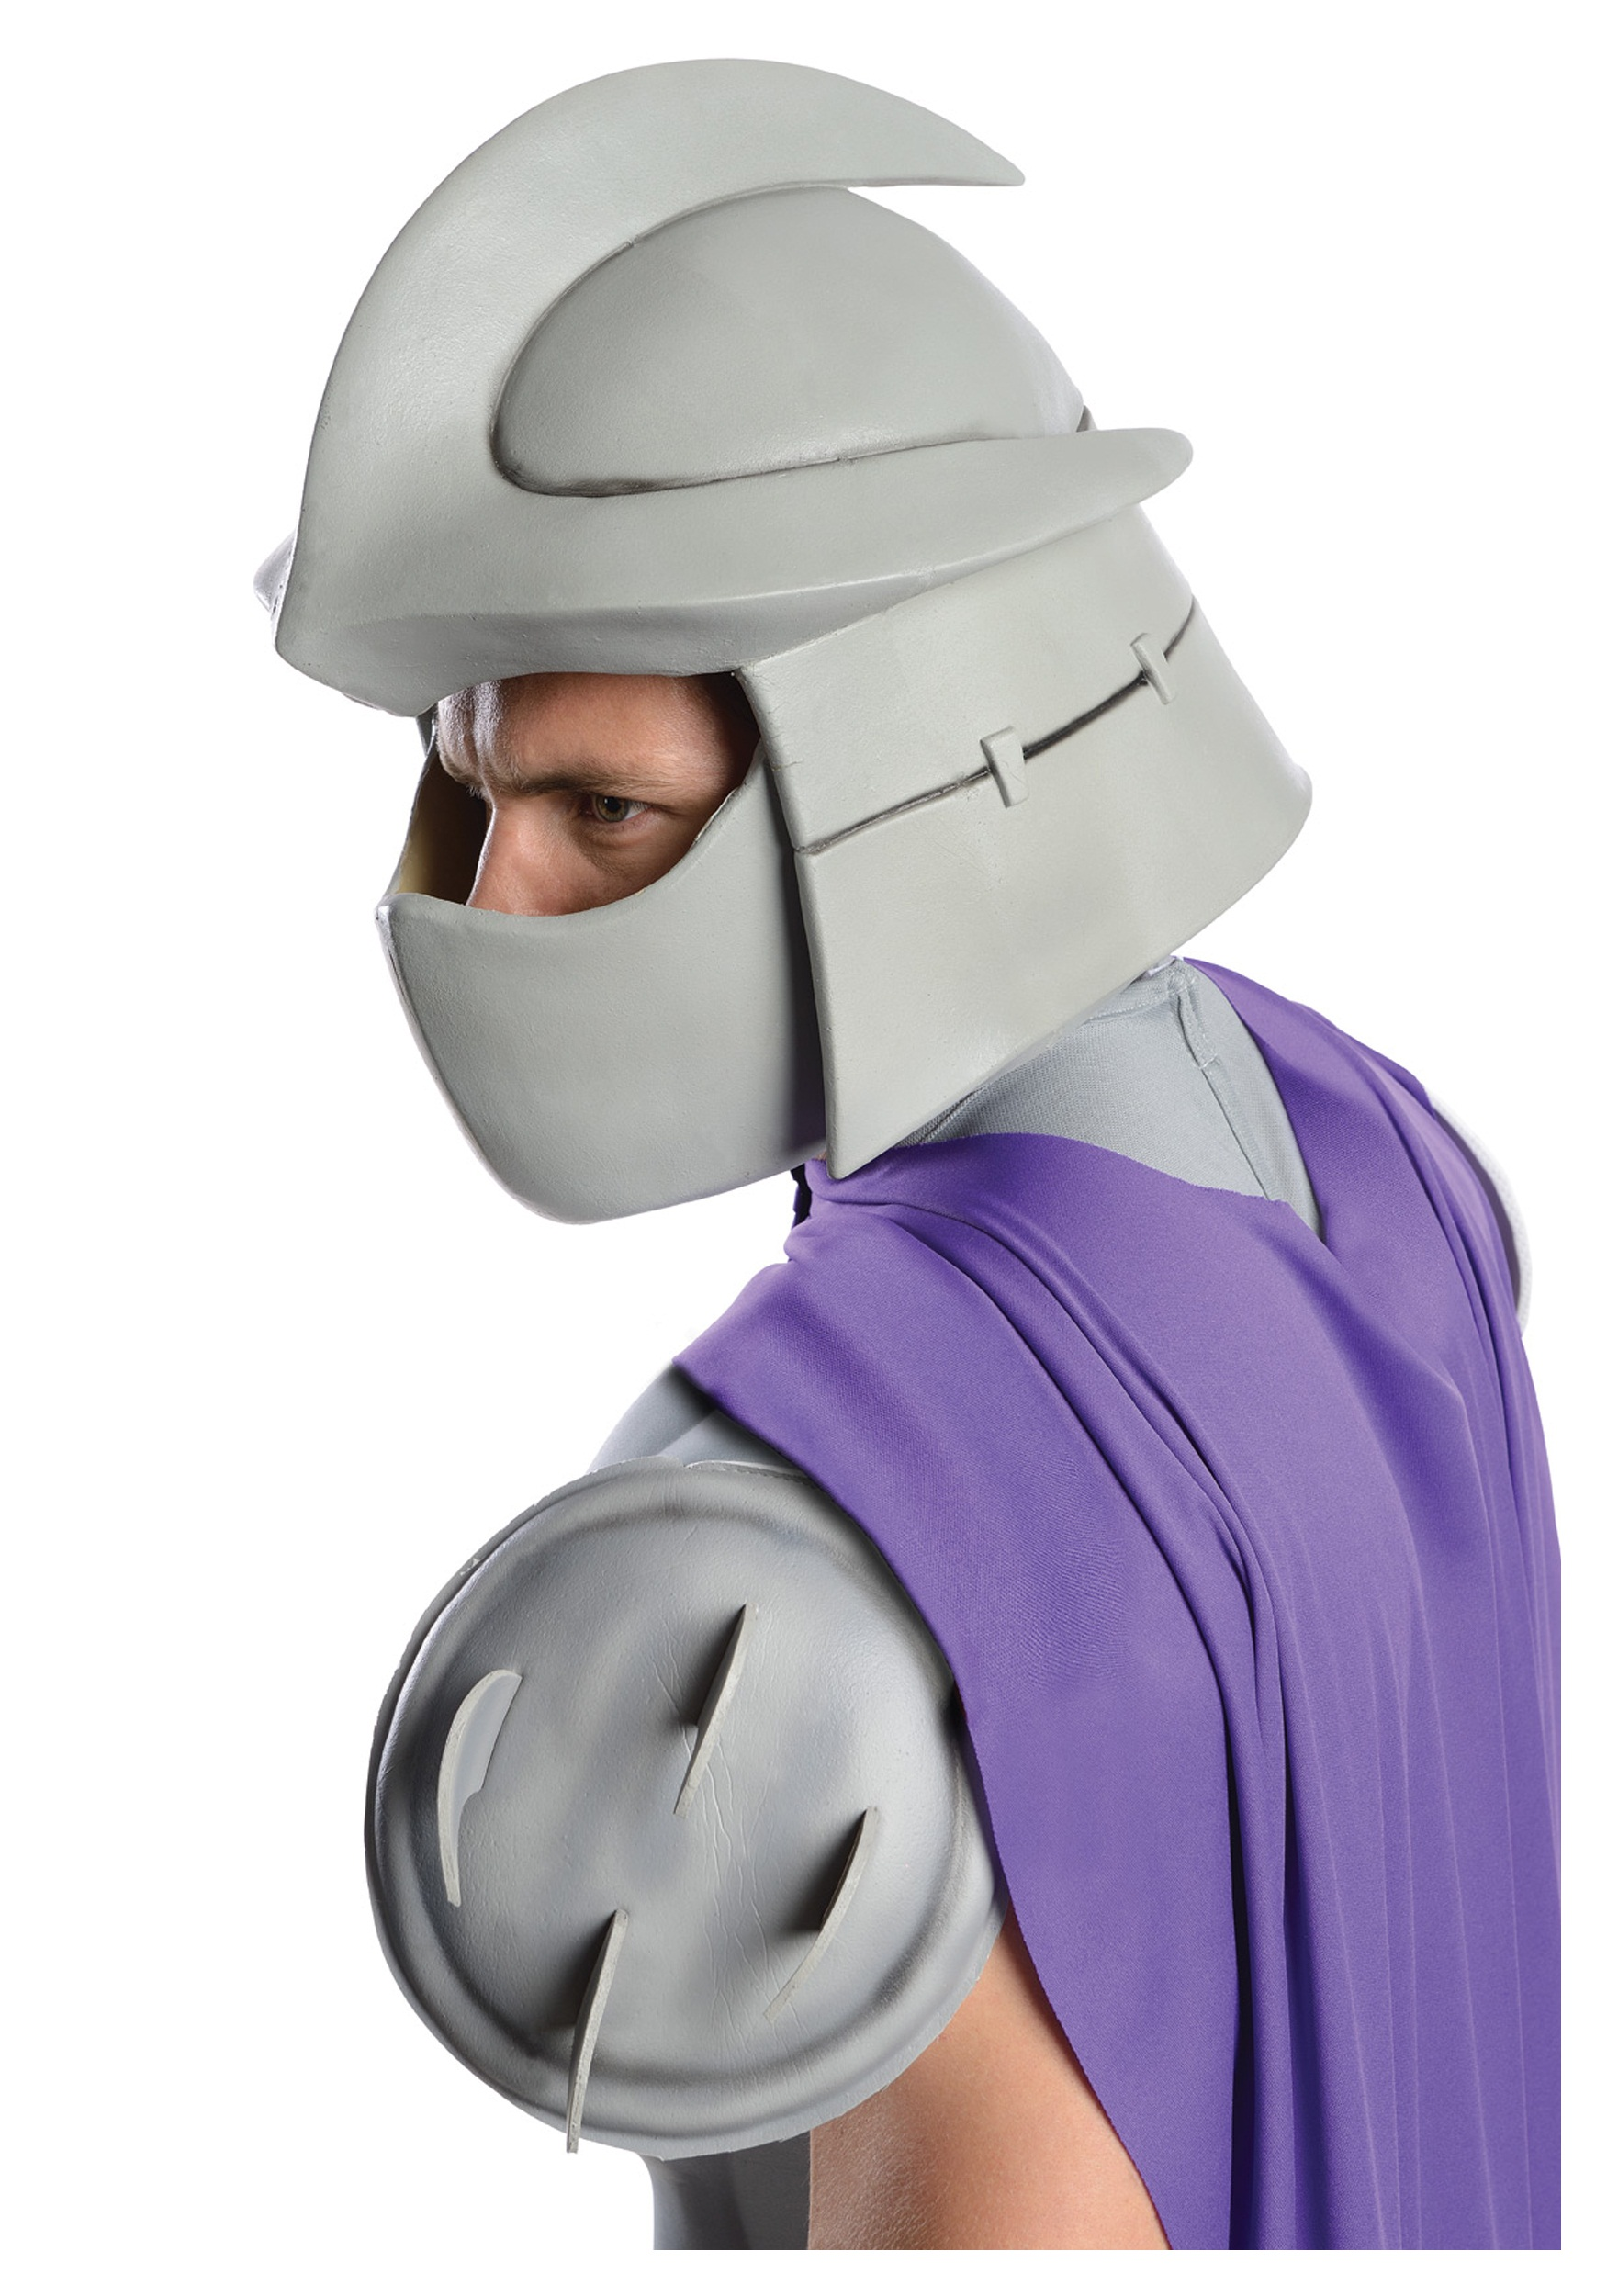 Shredder Mask RU68498